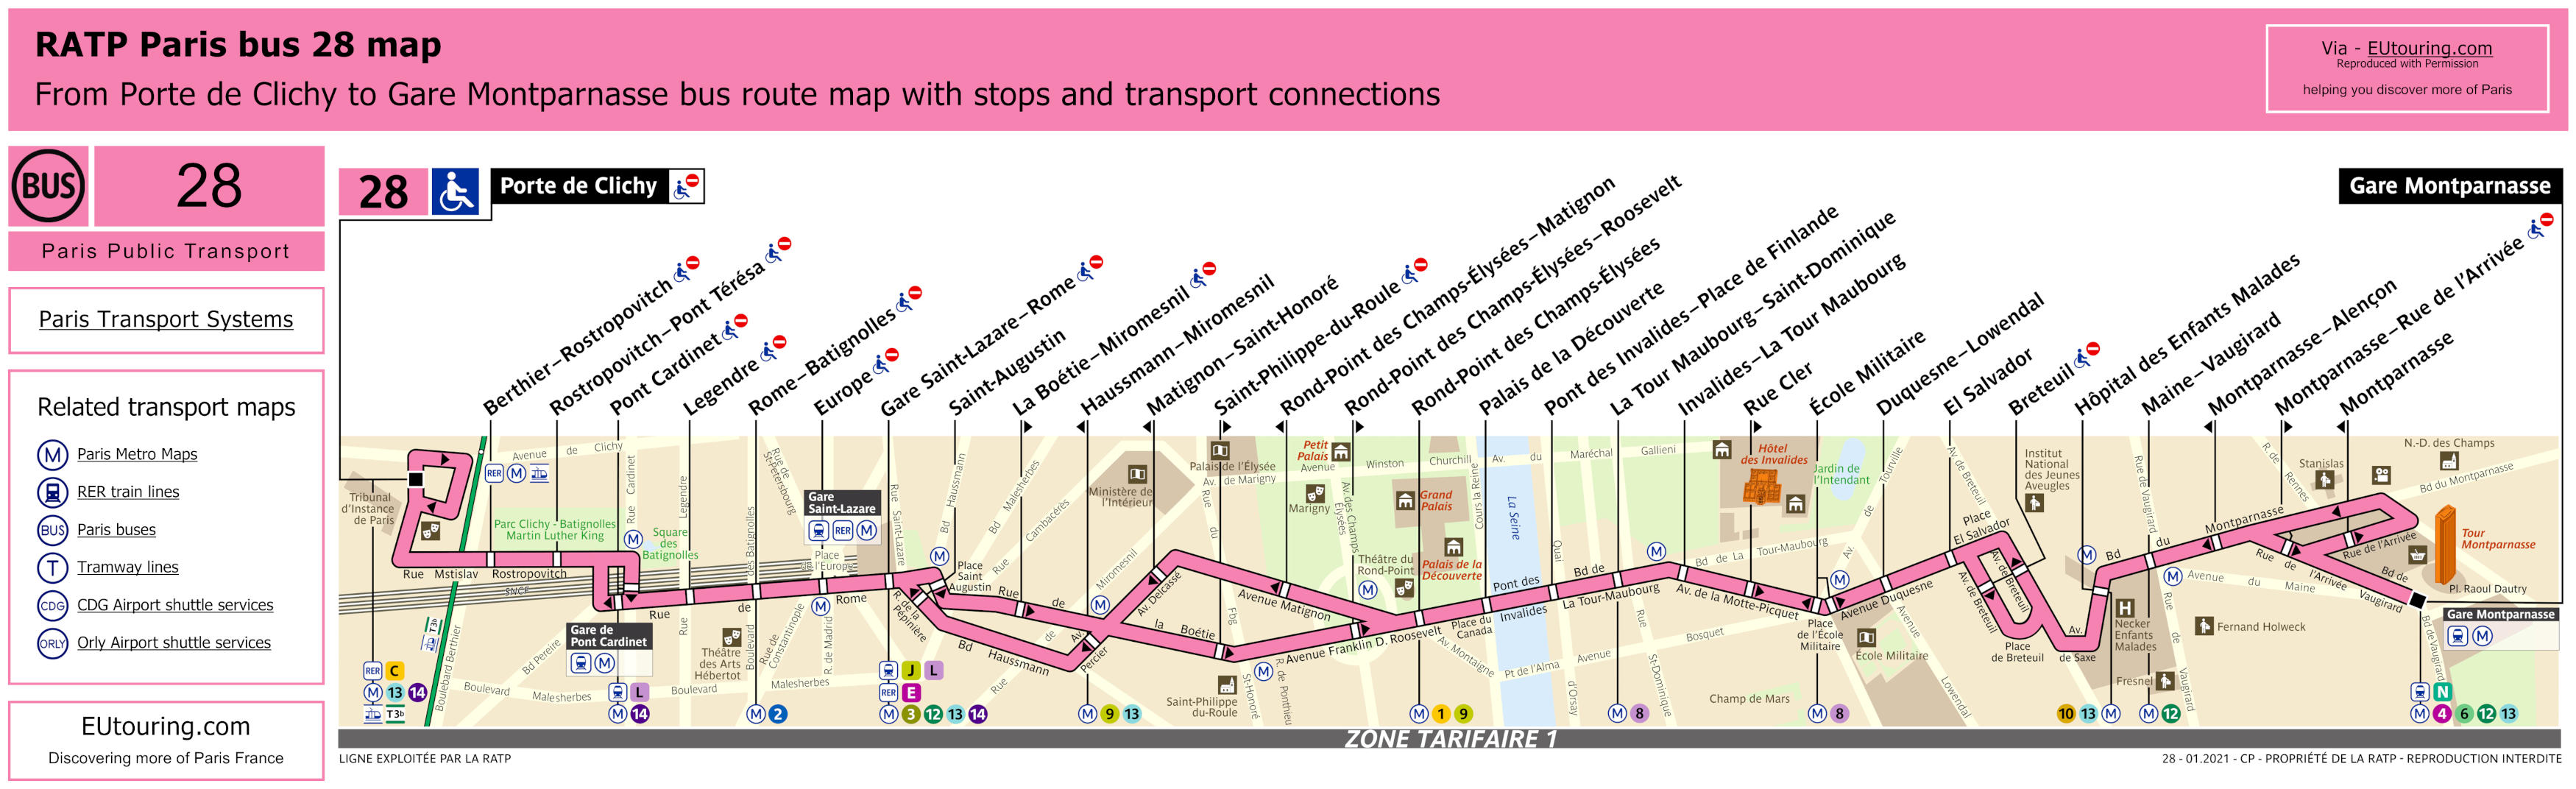 Paris Bus Maps And Timetables For Bus Lines 20 To 29